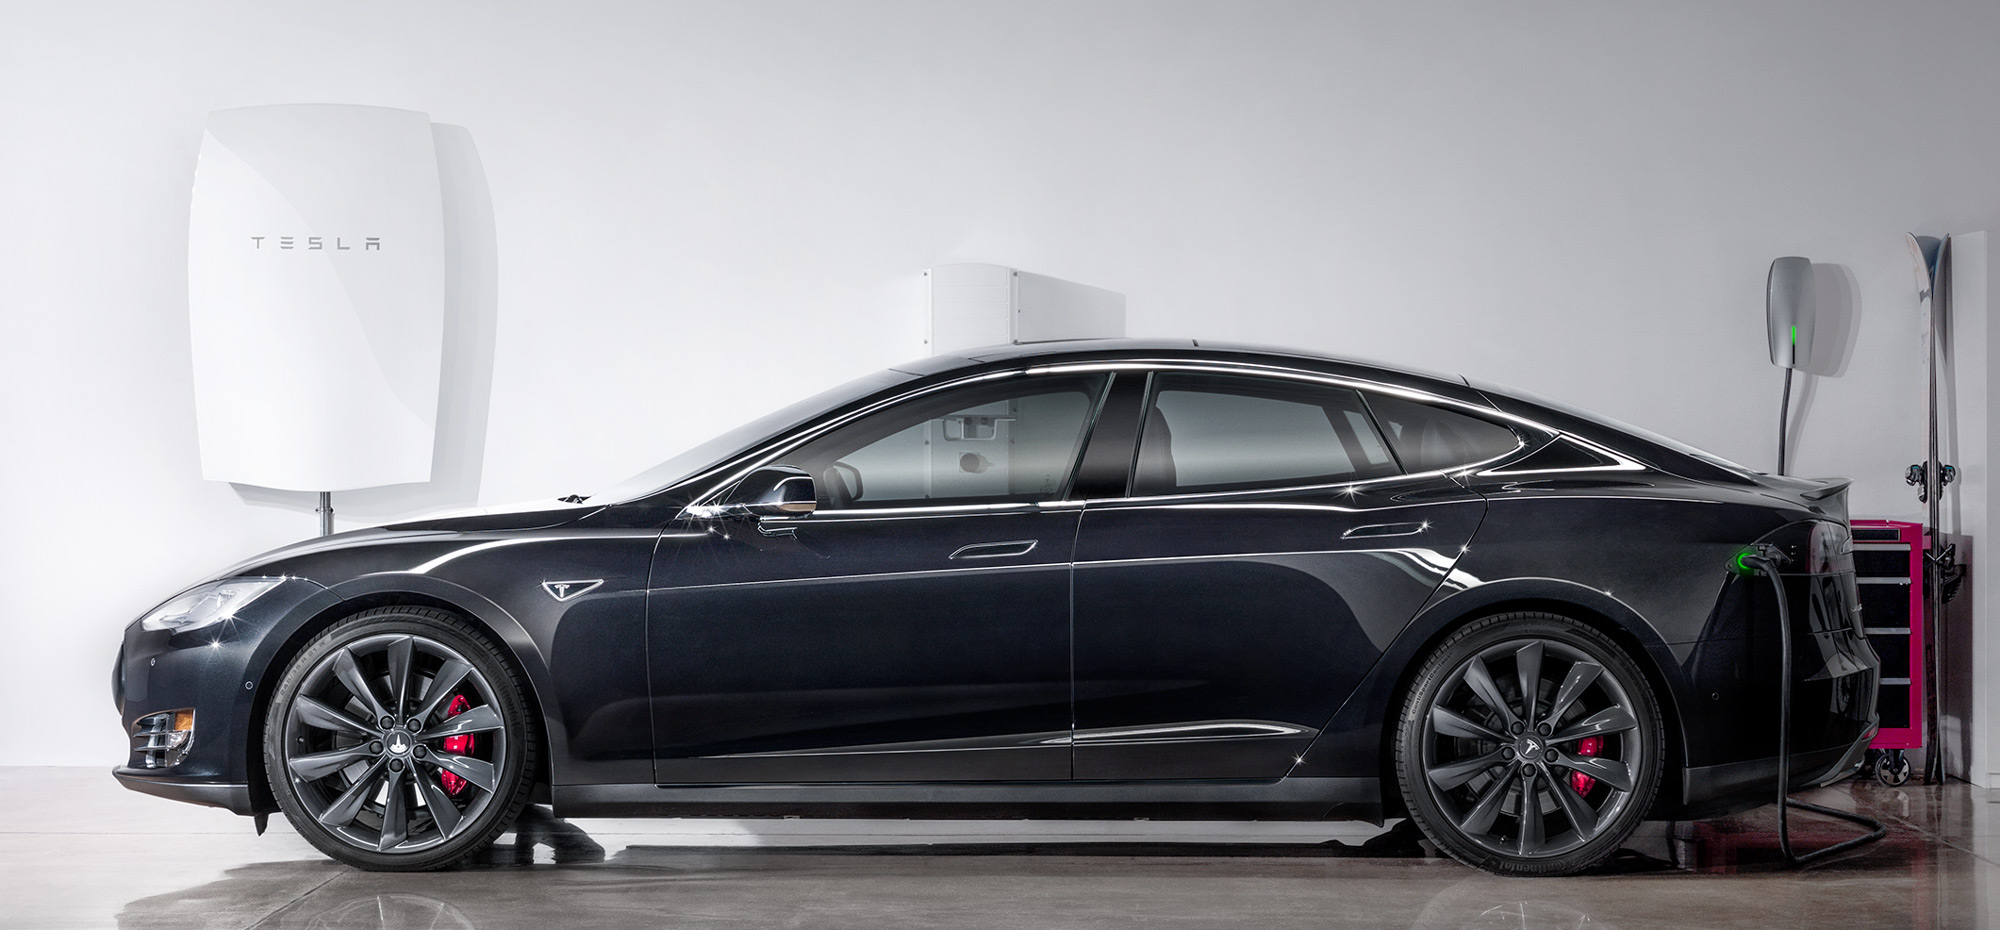 """The ASA has confirmed that Tesla has the right to claim it offers """"The World's Fastest Charging Station"""". Image: Tesla."""